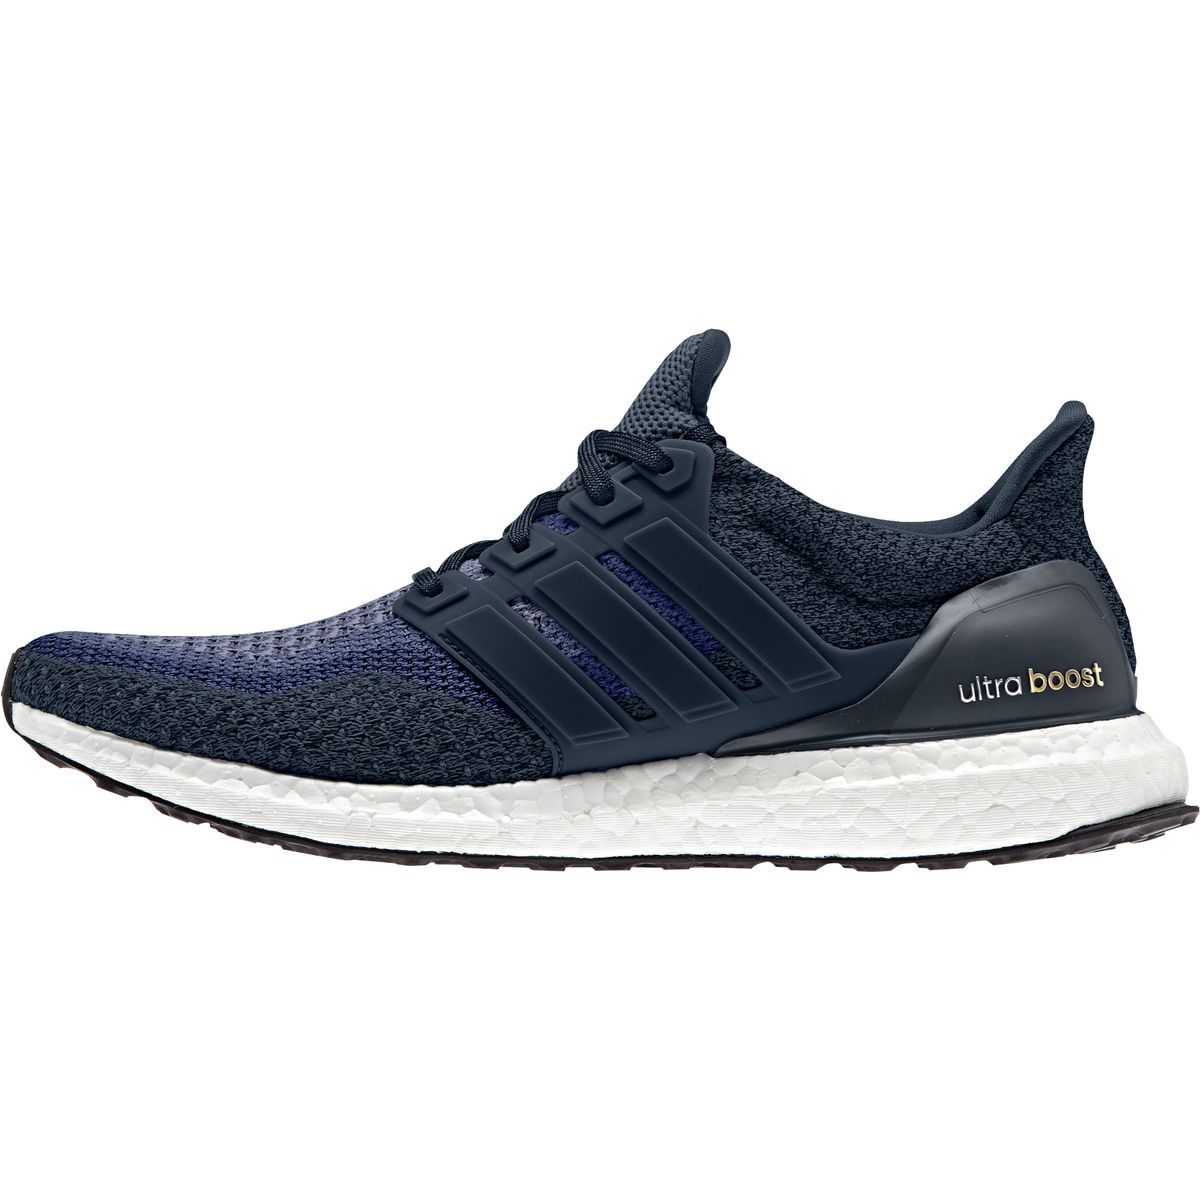 Adidas Ultra Boost , Collegiate Navy $180